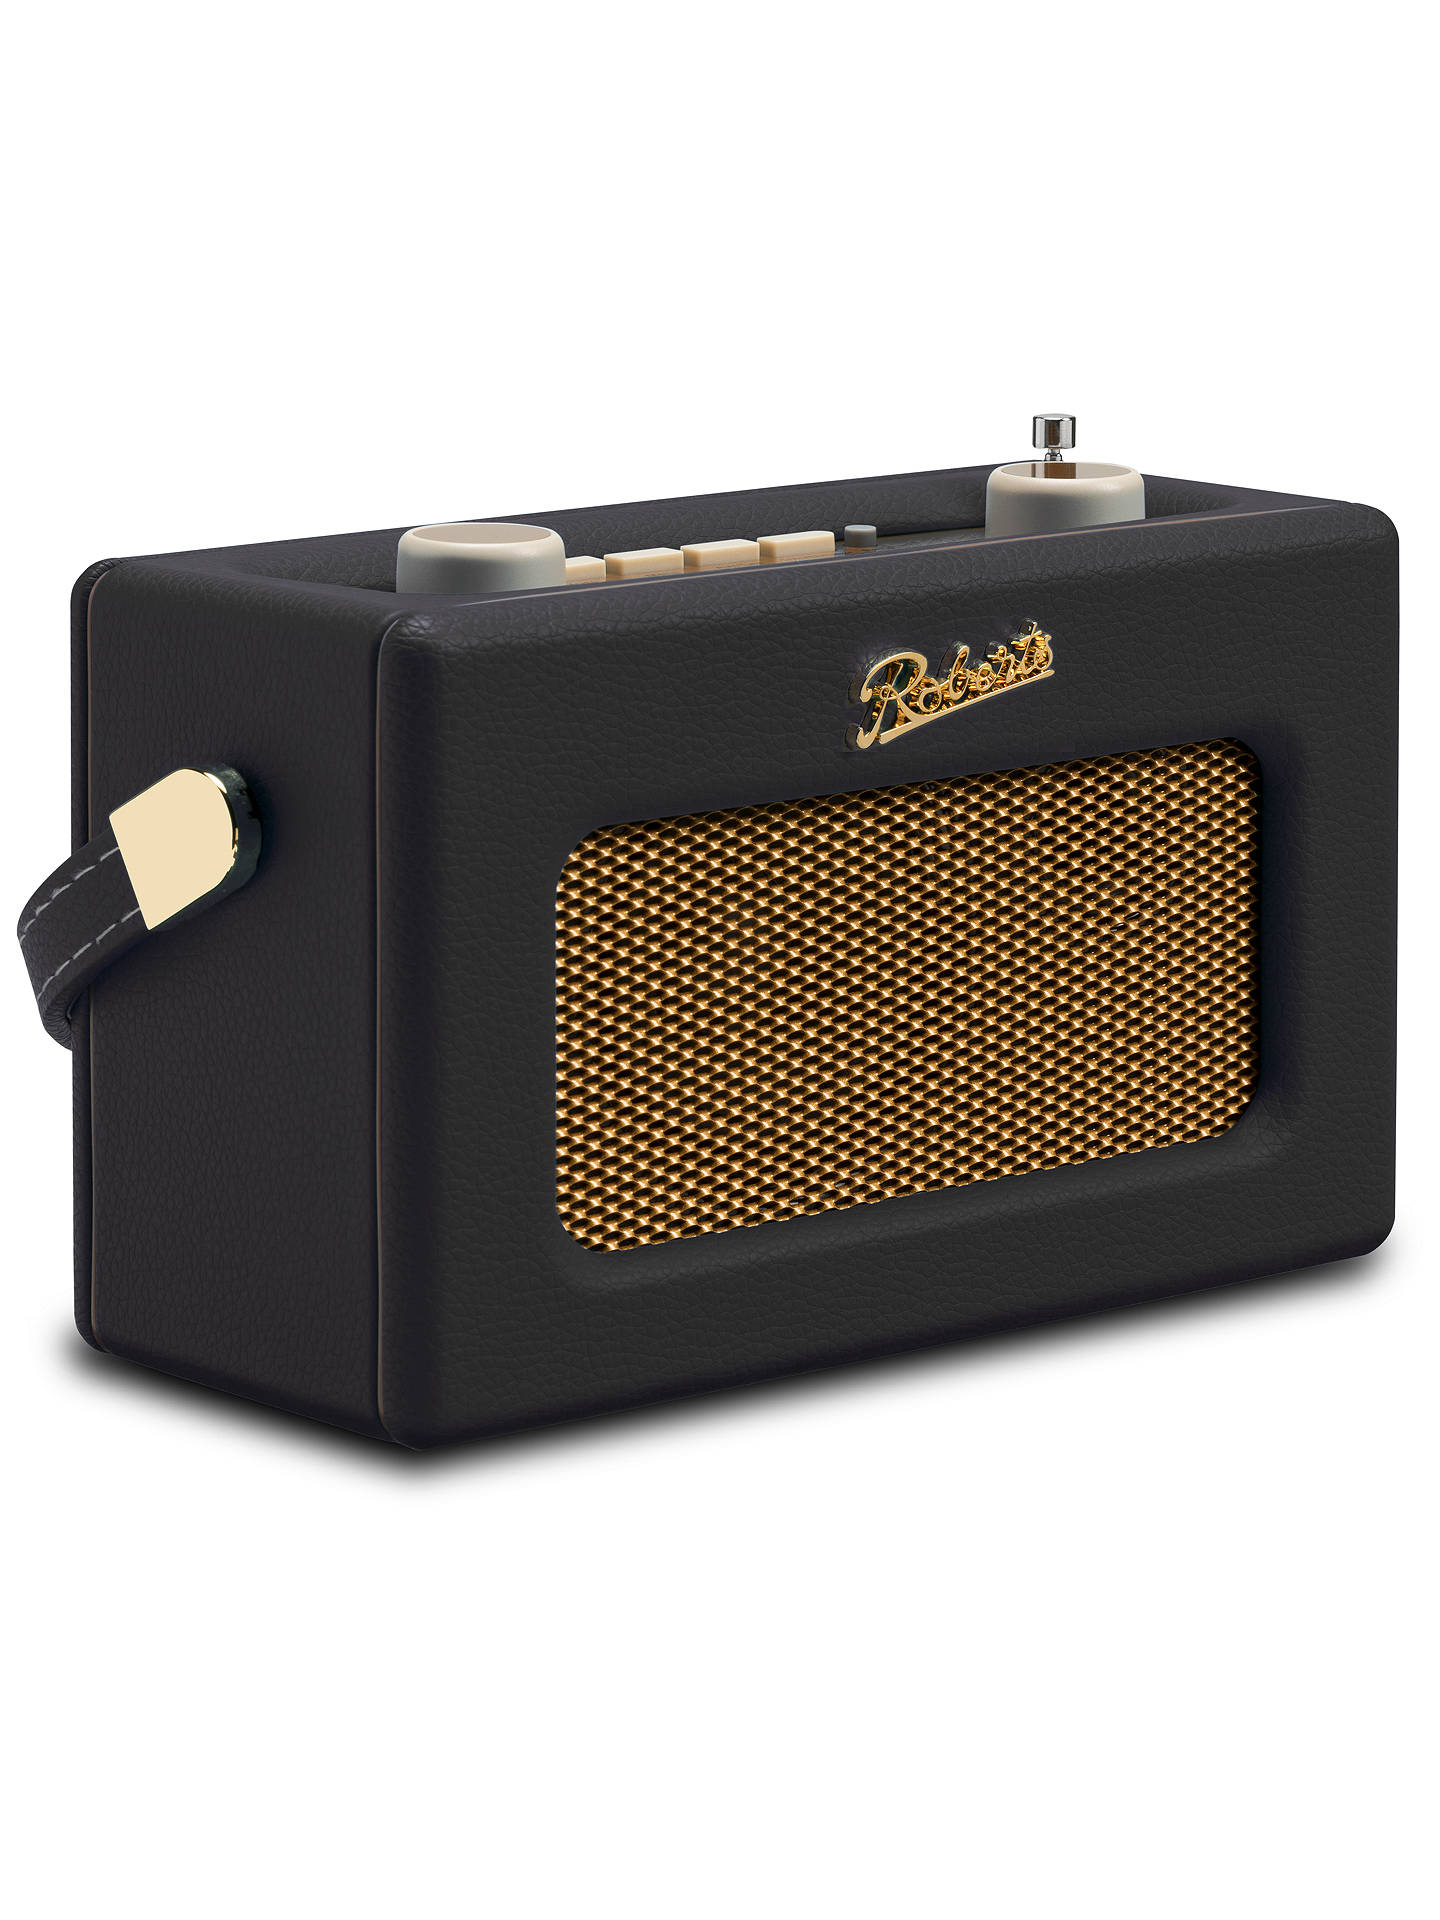 BuyROBERTS Revival Uno DAB/DAB+/FM Digital Radio with Alarm, Black Online at johnlewis.com